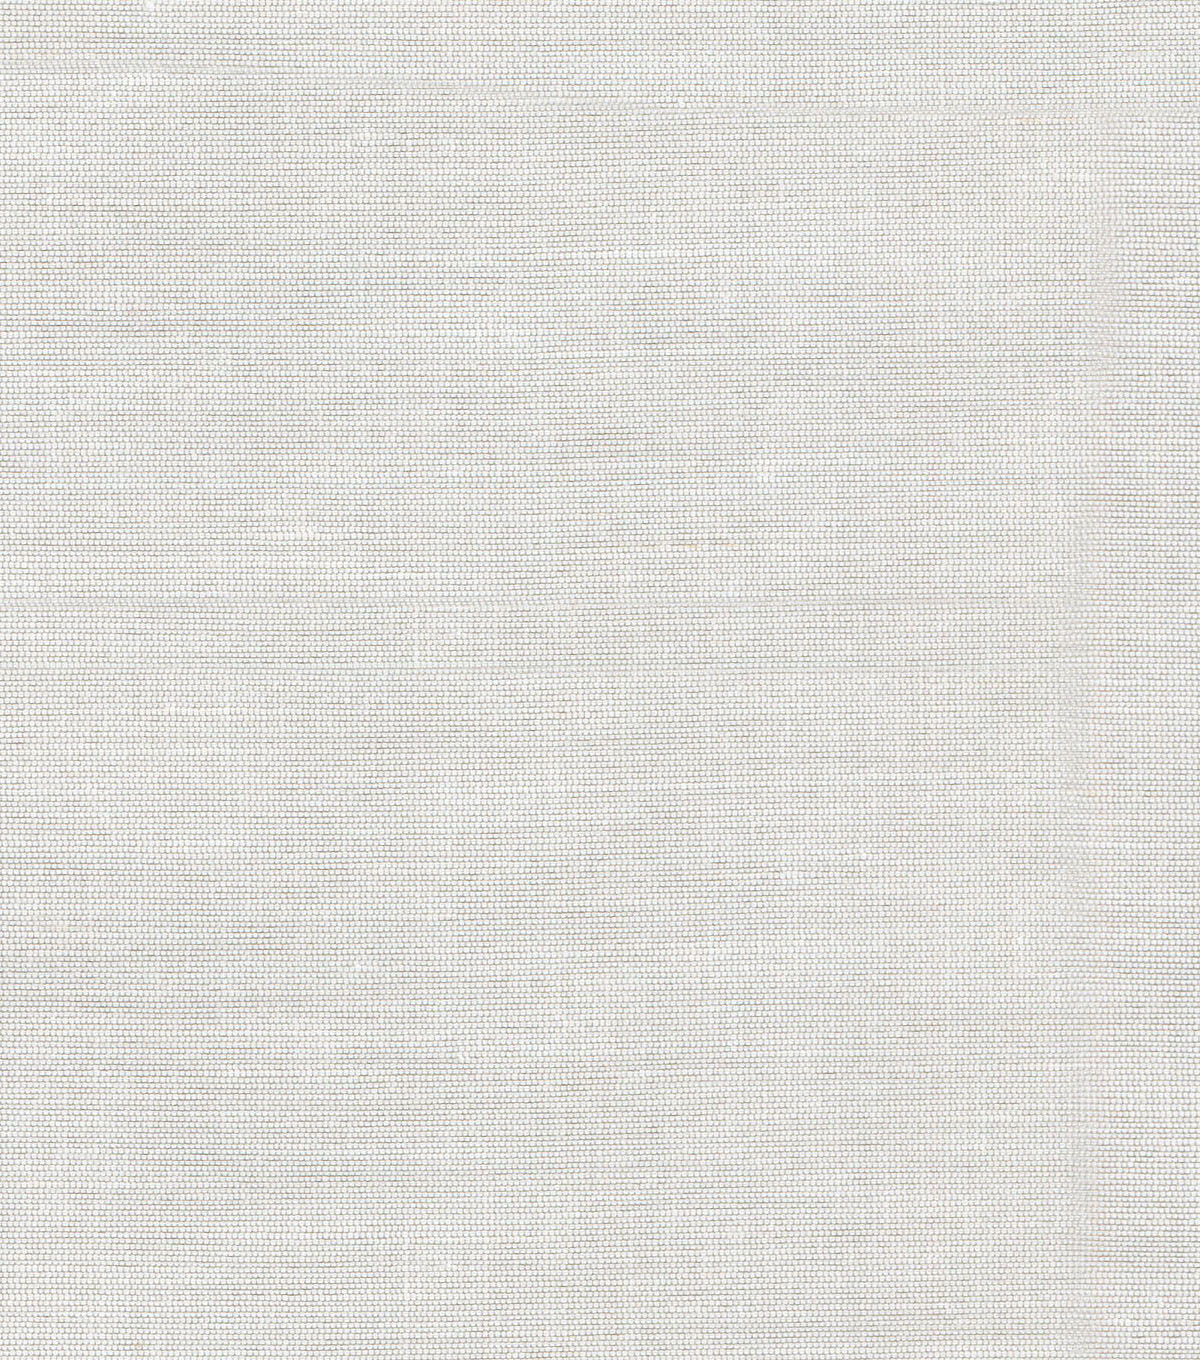 P/K Lifestyles Multi-Purpose Decor Fabric-Bangalore Linen